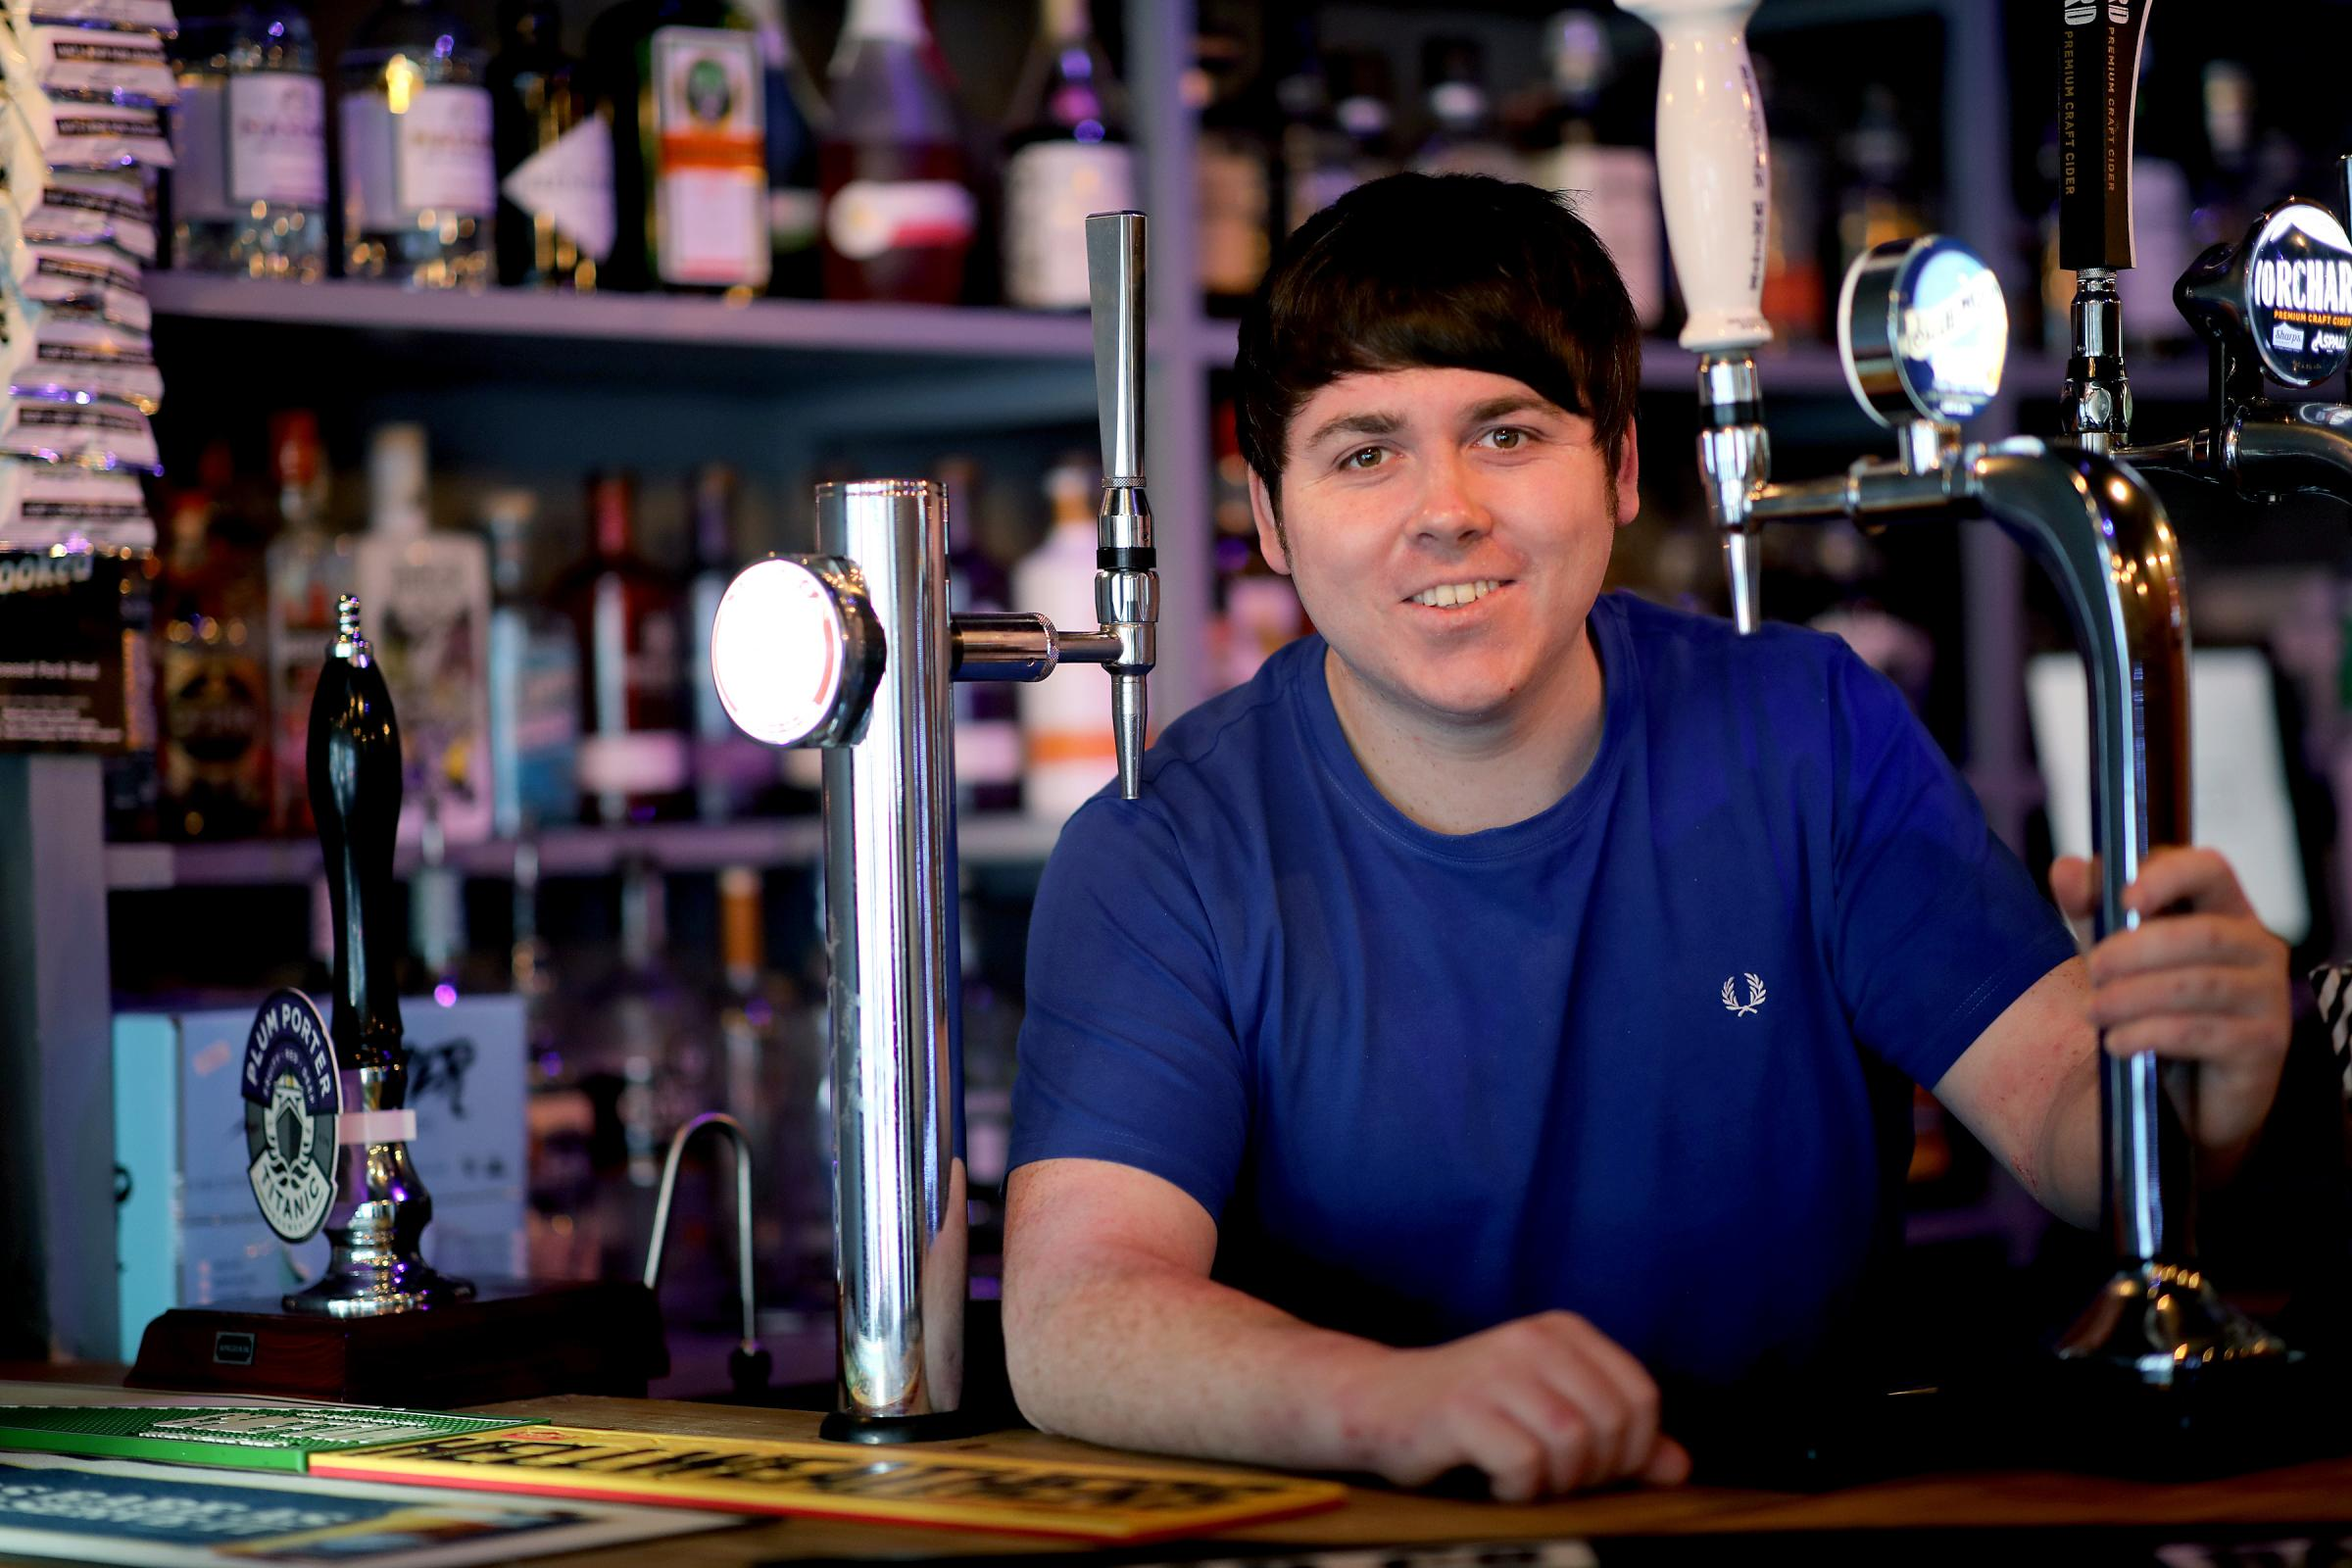 NEW BARS: Lee Shore behind the bar of The Halt in Redcar